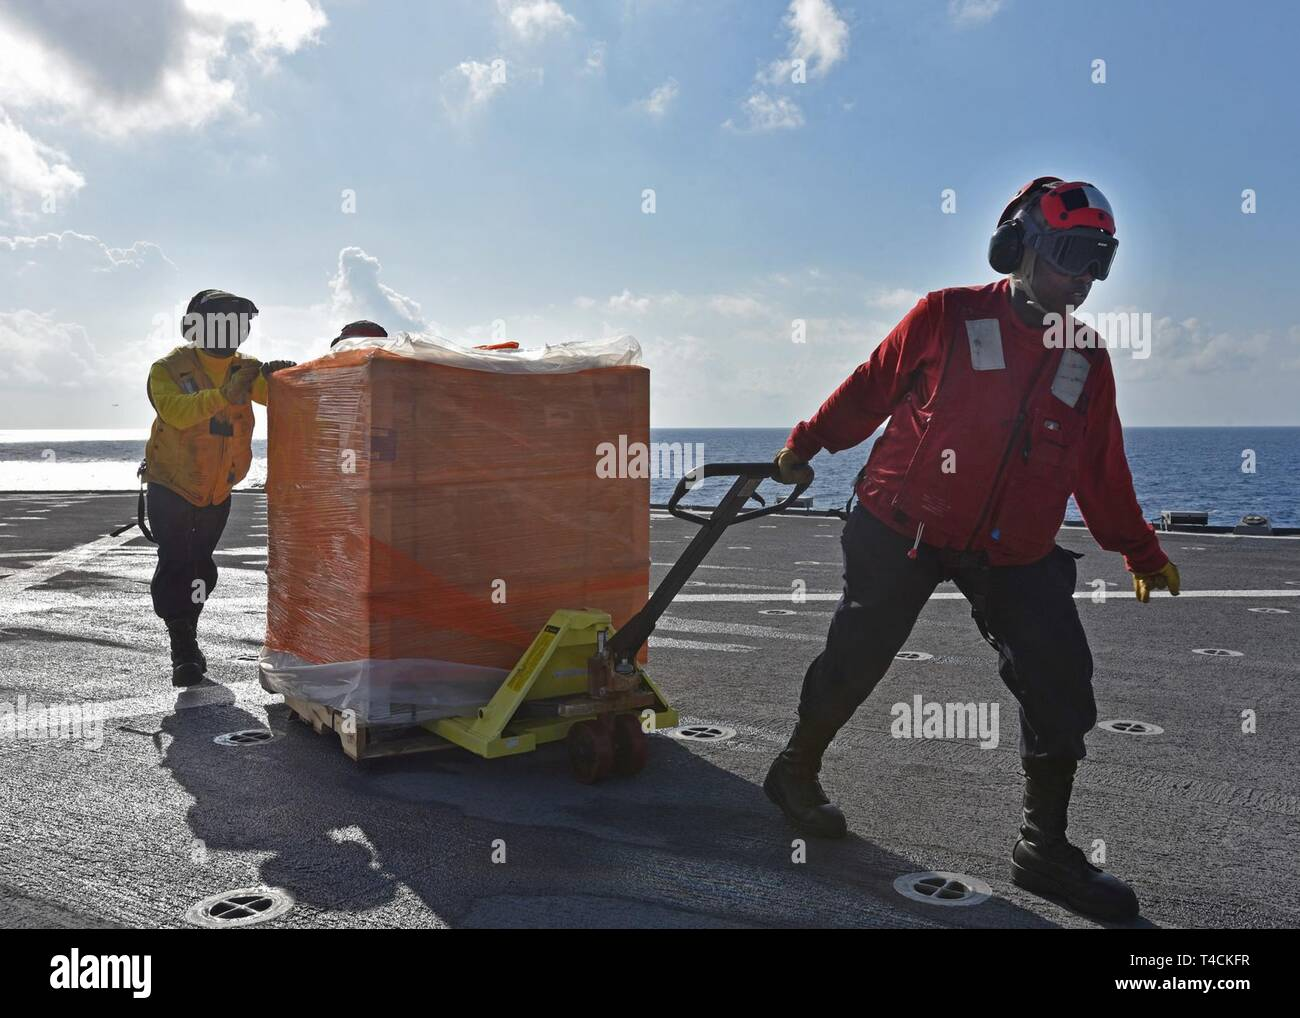 SOUTH CHINA SEA (March 20, 2019) - Logistics Specialist Seaman Zikeya Hammond-Douglas, from Philadelphia, and Boatswain's Mate Seaman Shawn Bernard Jr., from Atlanta, clear the ship's flight deck of delivered supplies during a vertical replenishment aboard U.S. 7th Fleet Flagship USS Blue Ridge (LCC 19). Blue Ridge is the oldest operational ship in the Navy and, as 7th Fleet command ship, actively works to foster relationships with allies and partners in the Indo-Pacific Region. - Stock Image